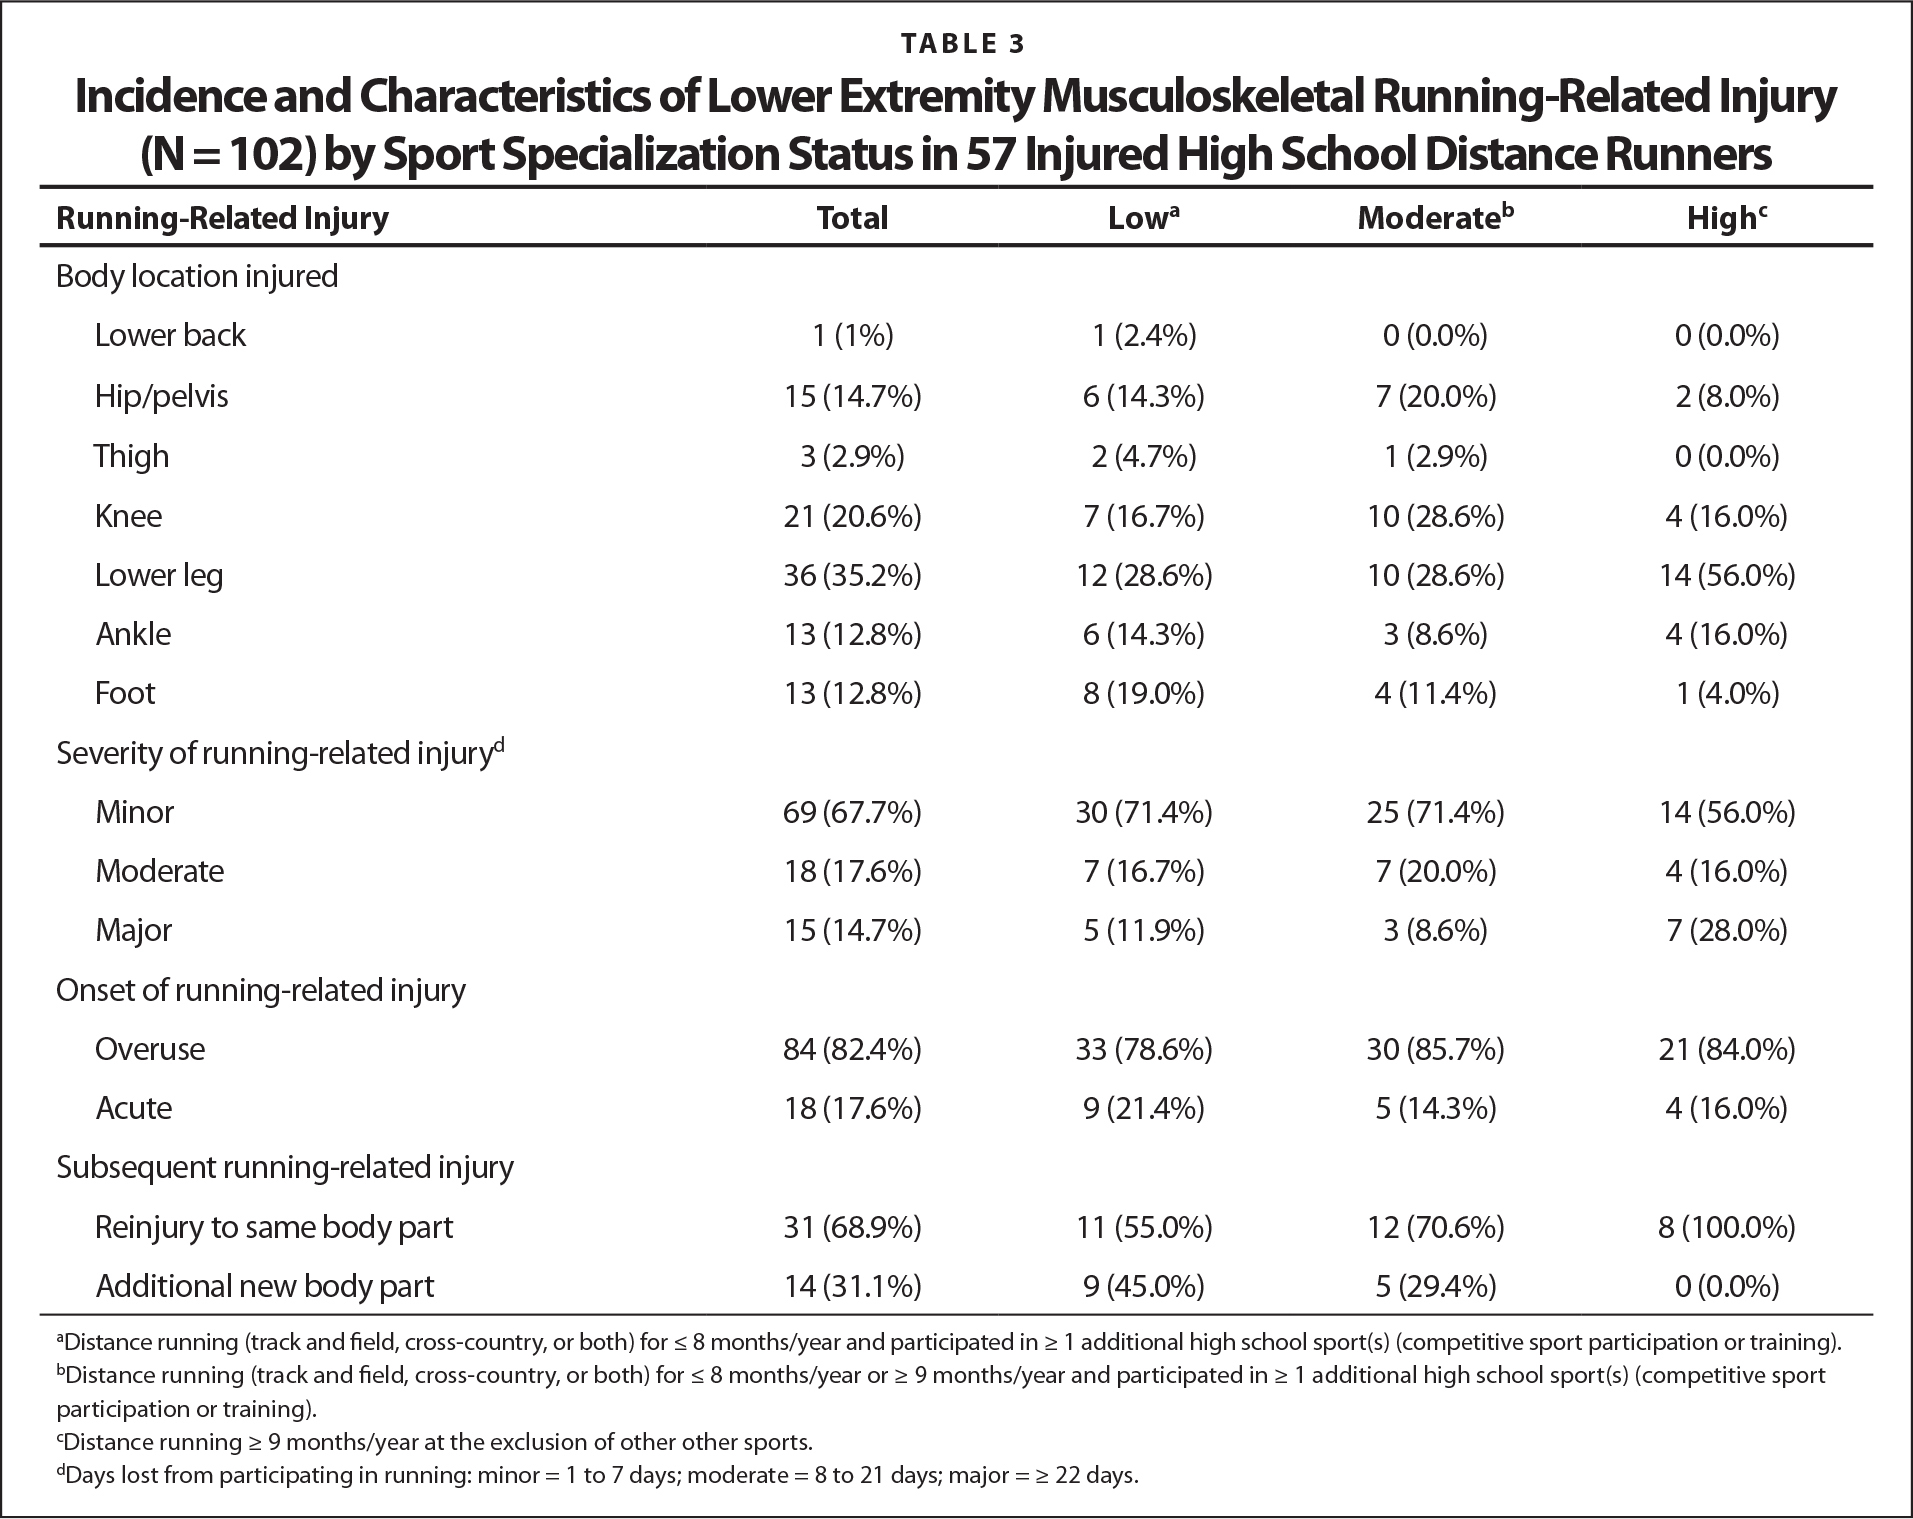 Incidence and Characteristics of Lower Extremity Musculoskeletal Running-Related Injury (N = 102) by Sport Specialization Status in 57 Injured High School Distance Runners